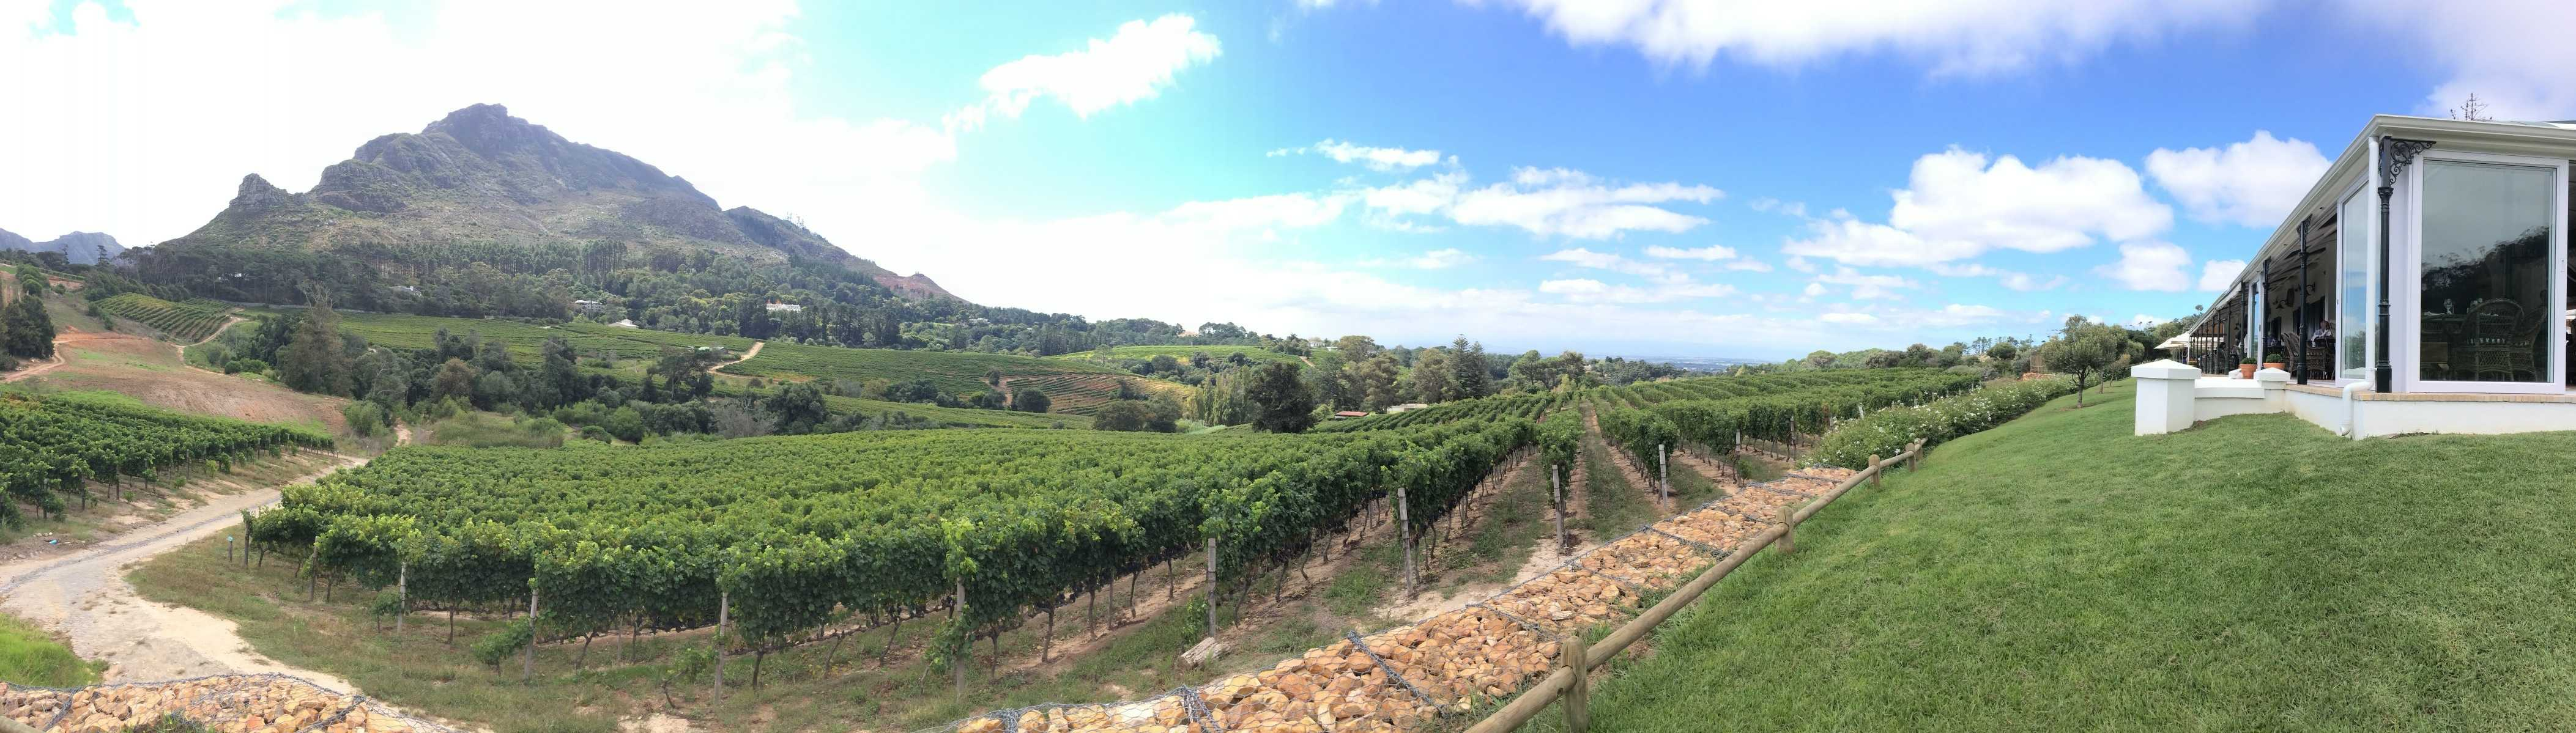 vineyards on hillside with mountain and blue skies with clouds